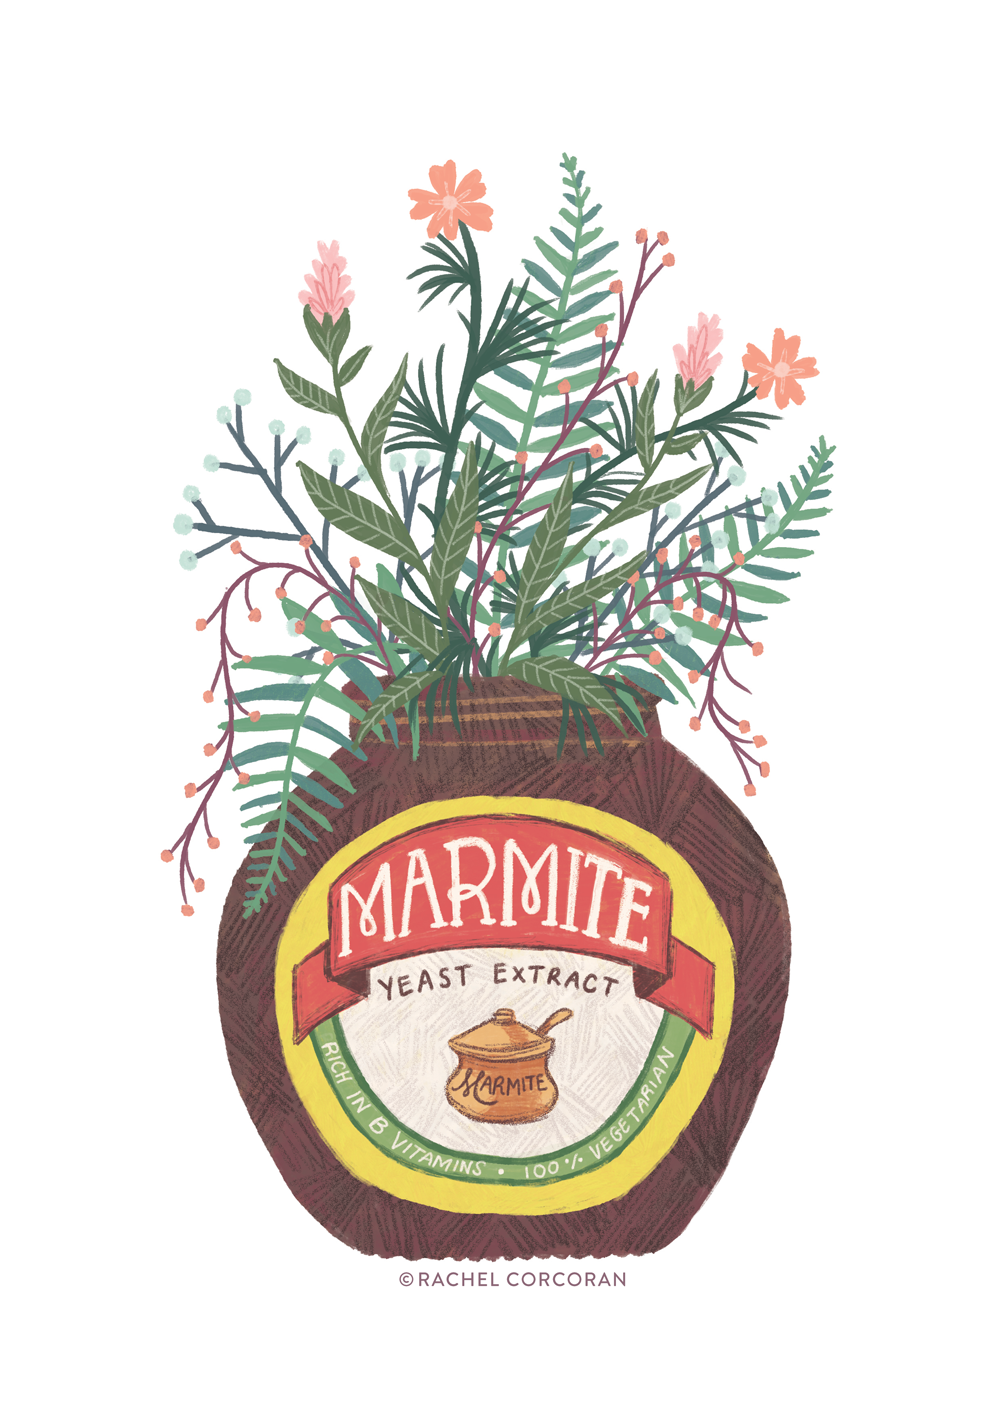 Wildflower marmite illustration by Rachel Corcoran